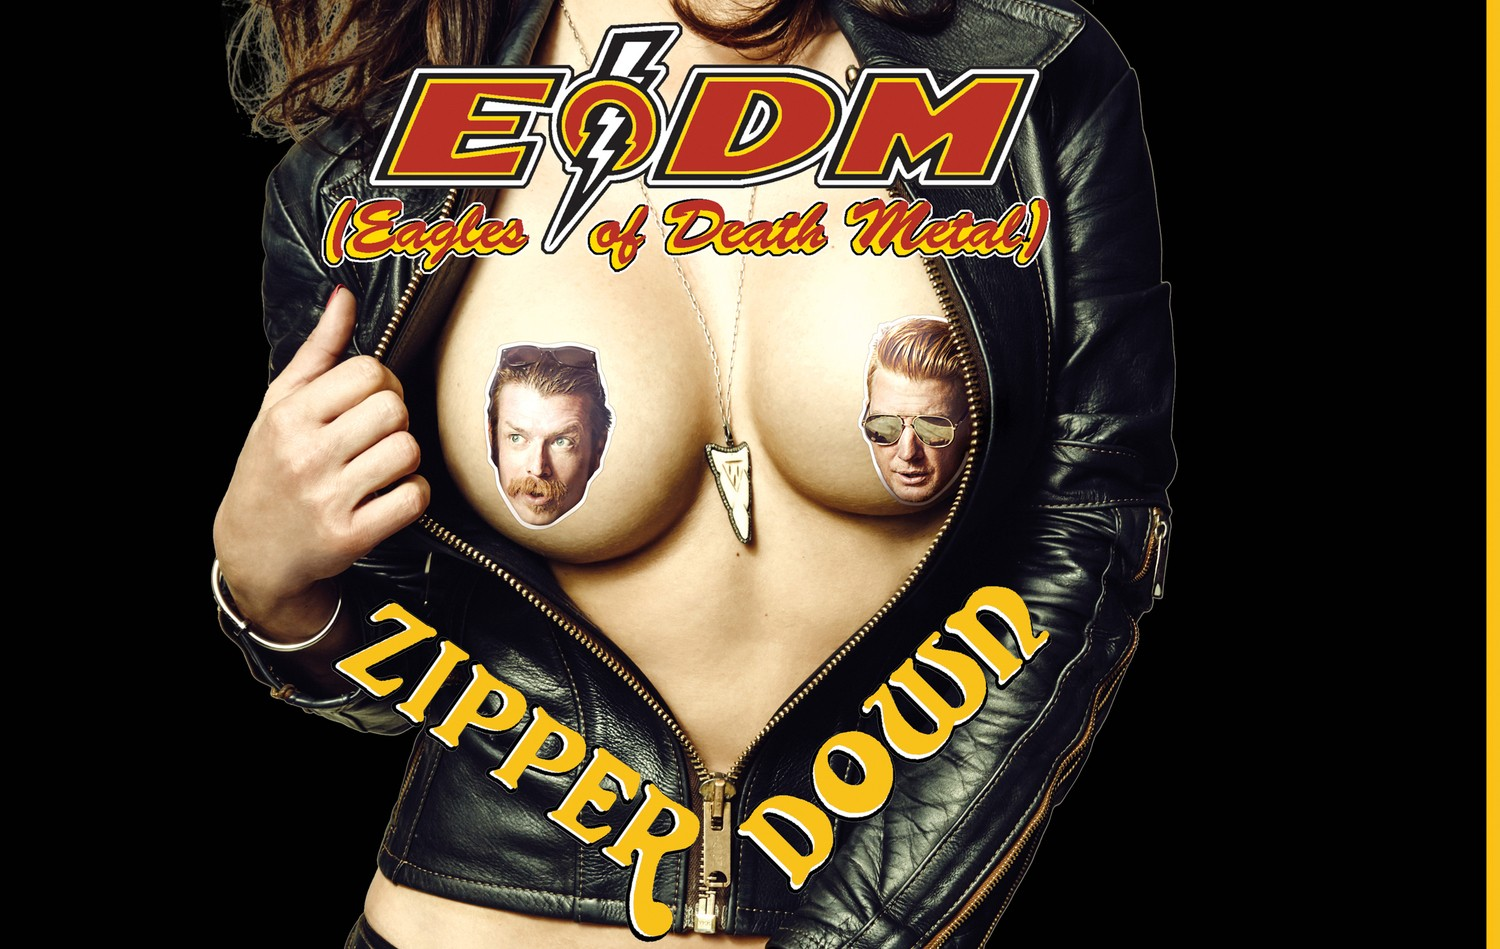 La chanson du jour – Eagles of death metal – stuck in the metal with you